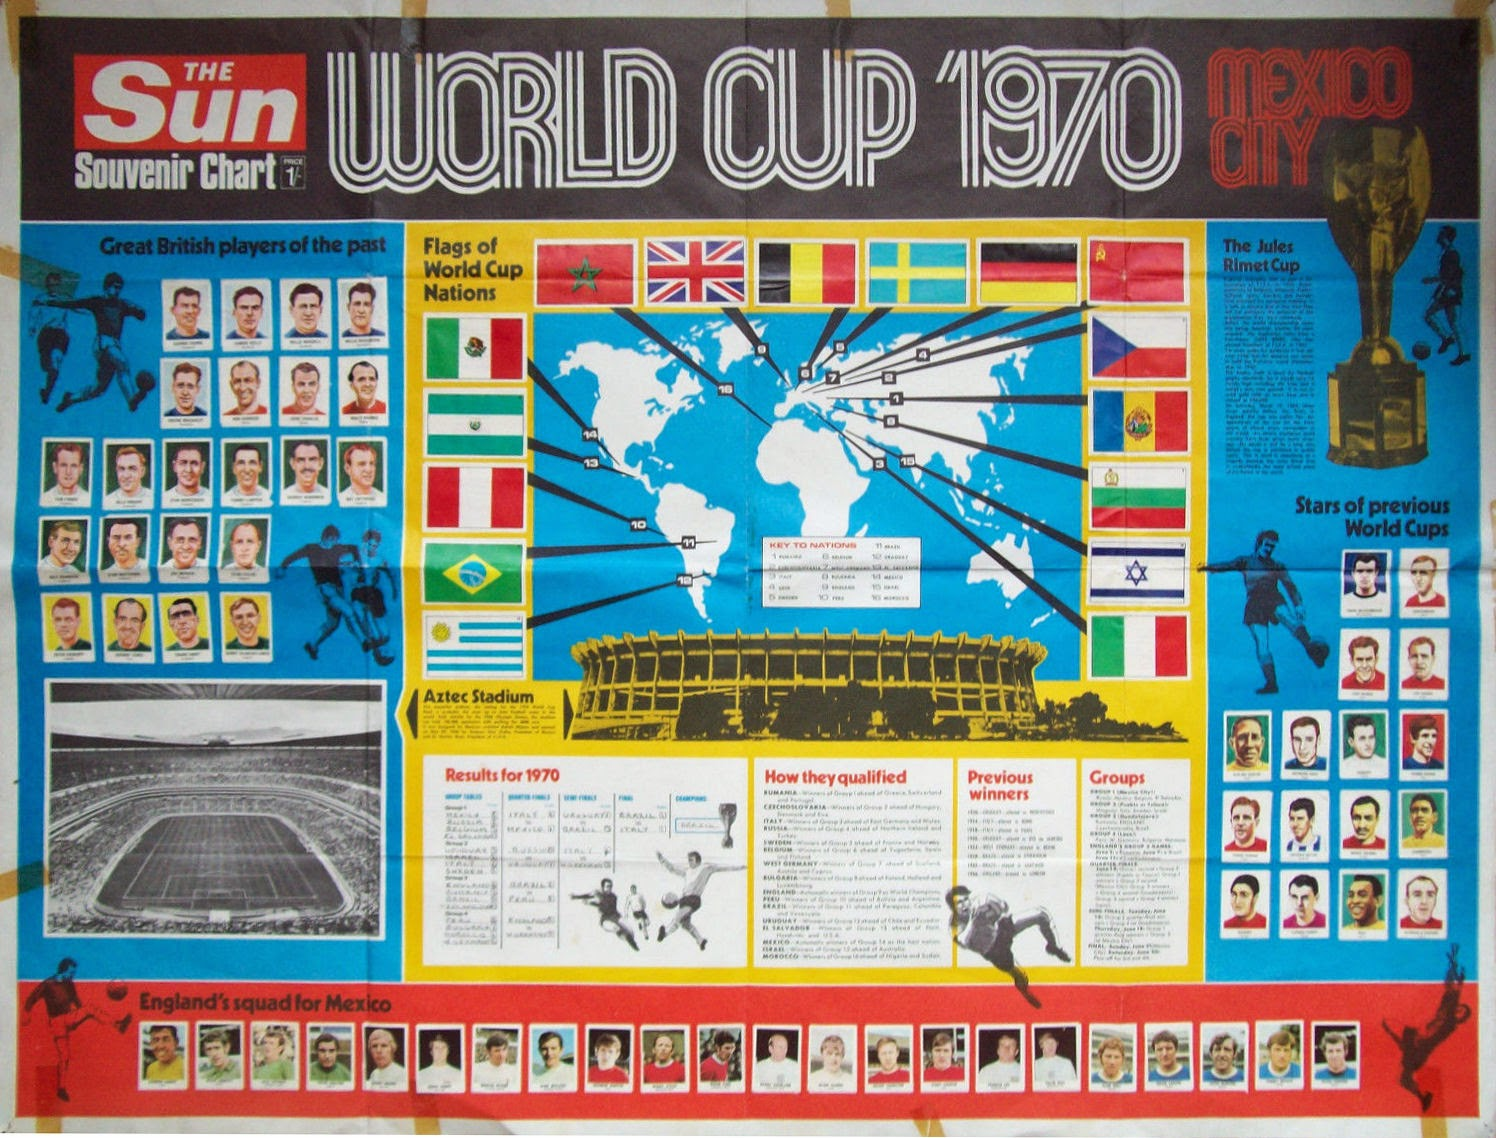 football cartophilic info exchange the sun world cup 1970 world cup 1970 wallchart the sun 28 16 22 16 stickers